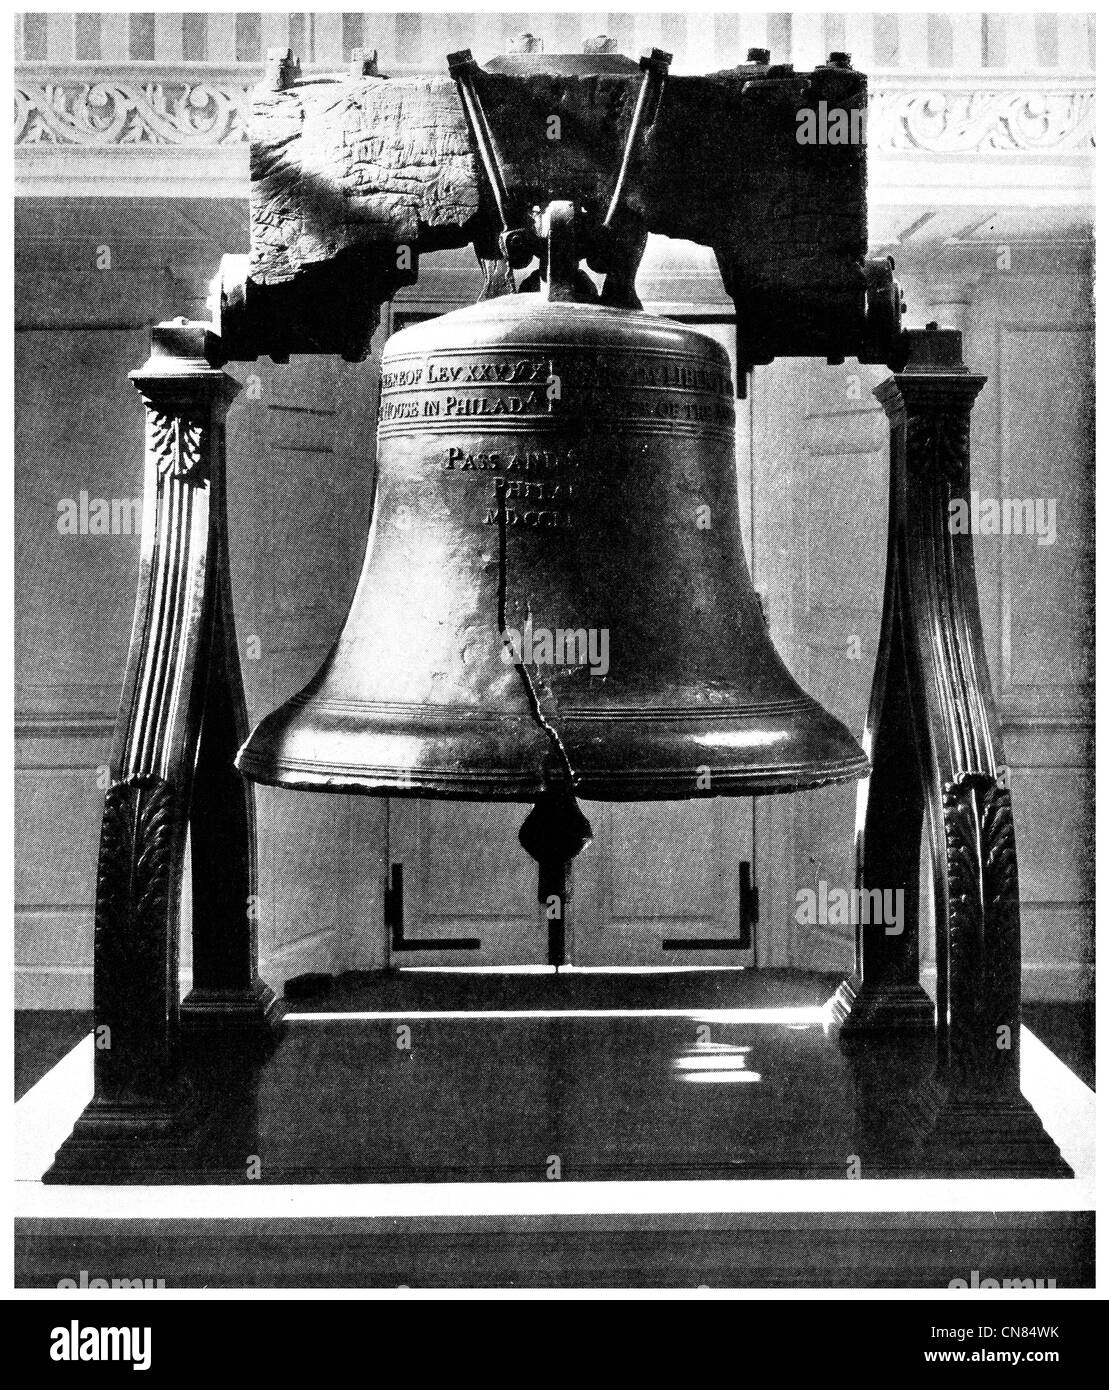 First published 1917 Liberty Bell Independence Hall National Park, Philadelphia, Pennsylvania, USA - Stock Image